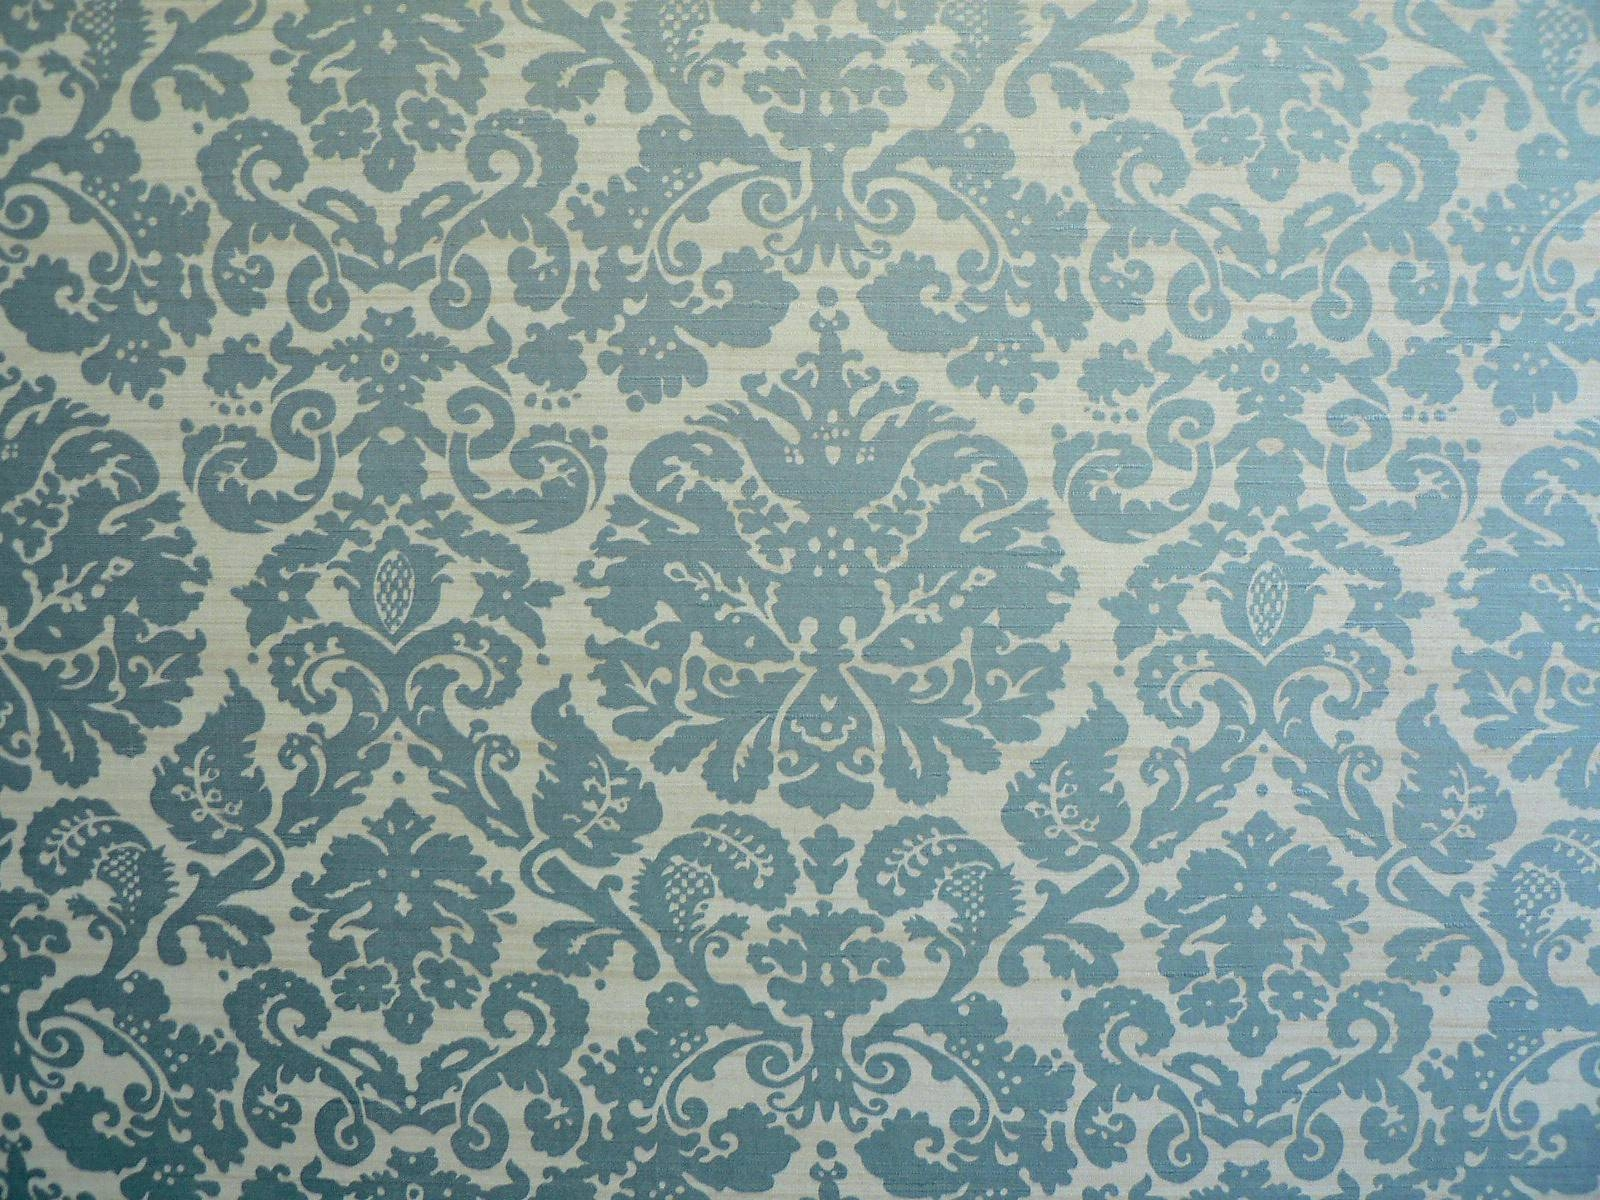 Free 40 Vintage Background In Psd Vector Eps Images, Photos, Reviews